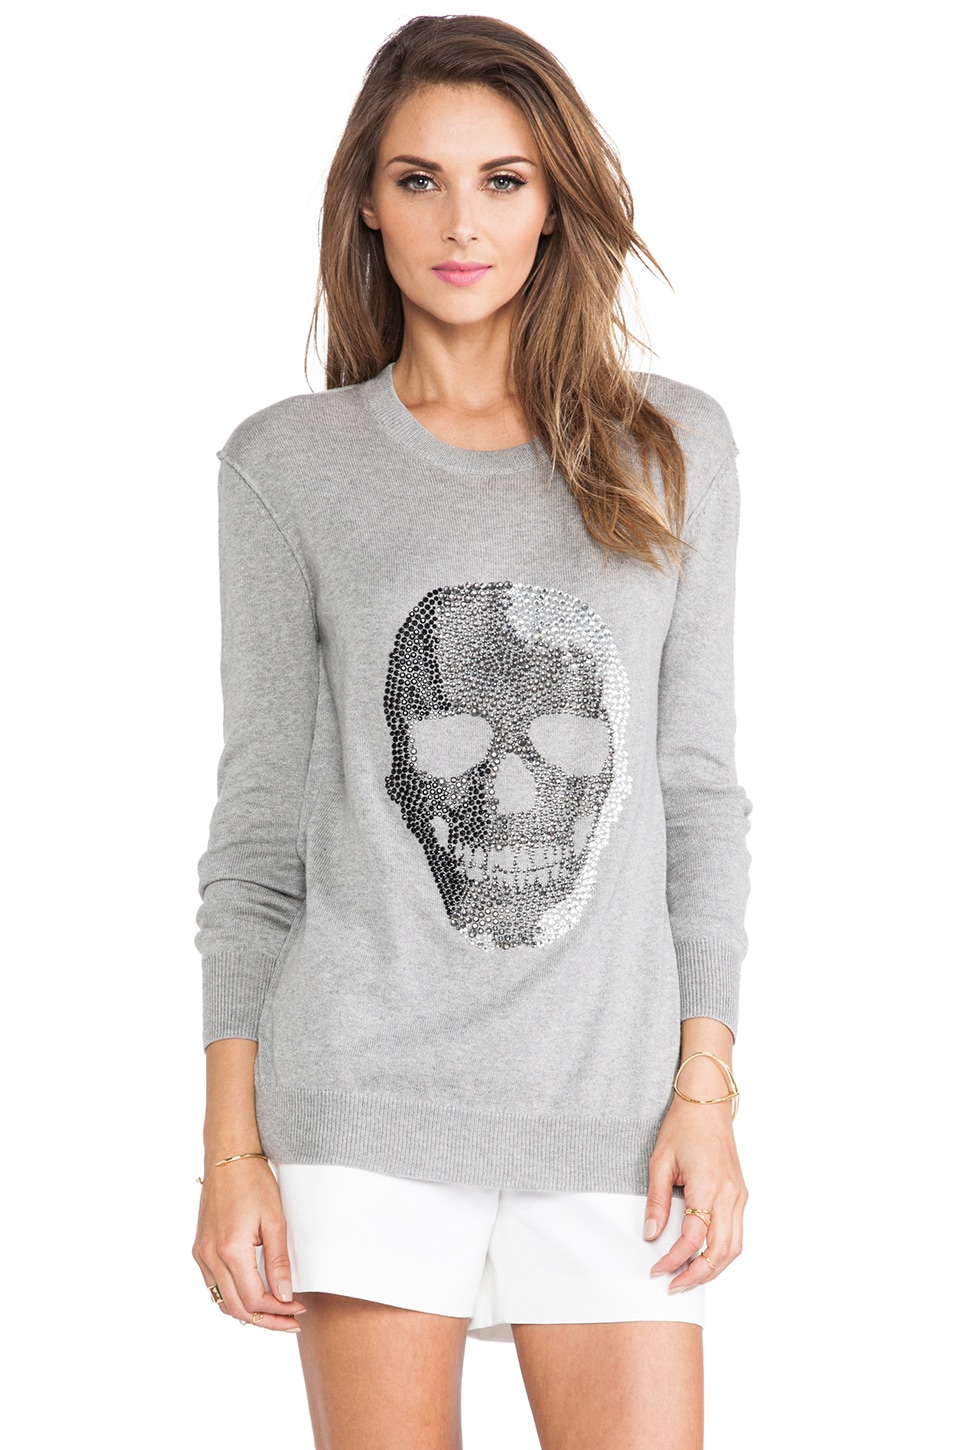 Haute Hippie Skull Pullover Sweater in Light Heather Grey